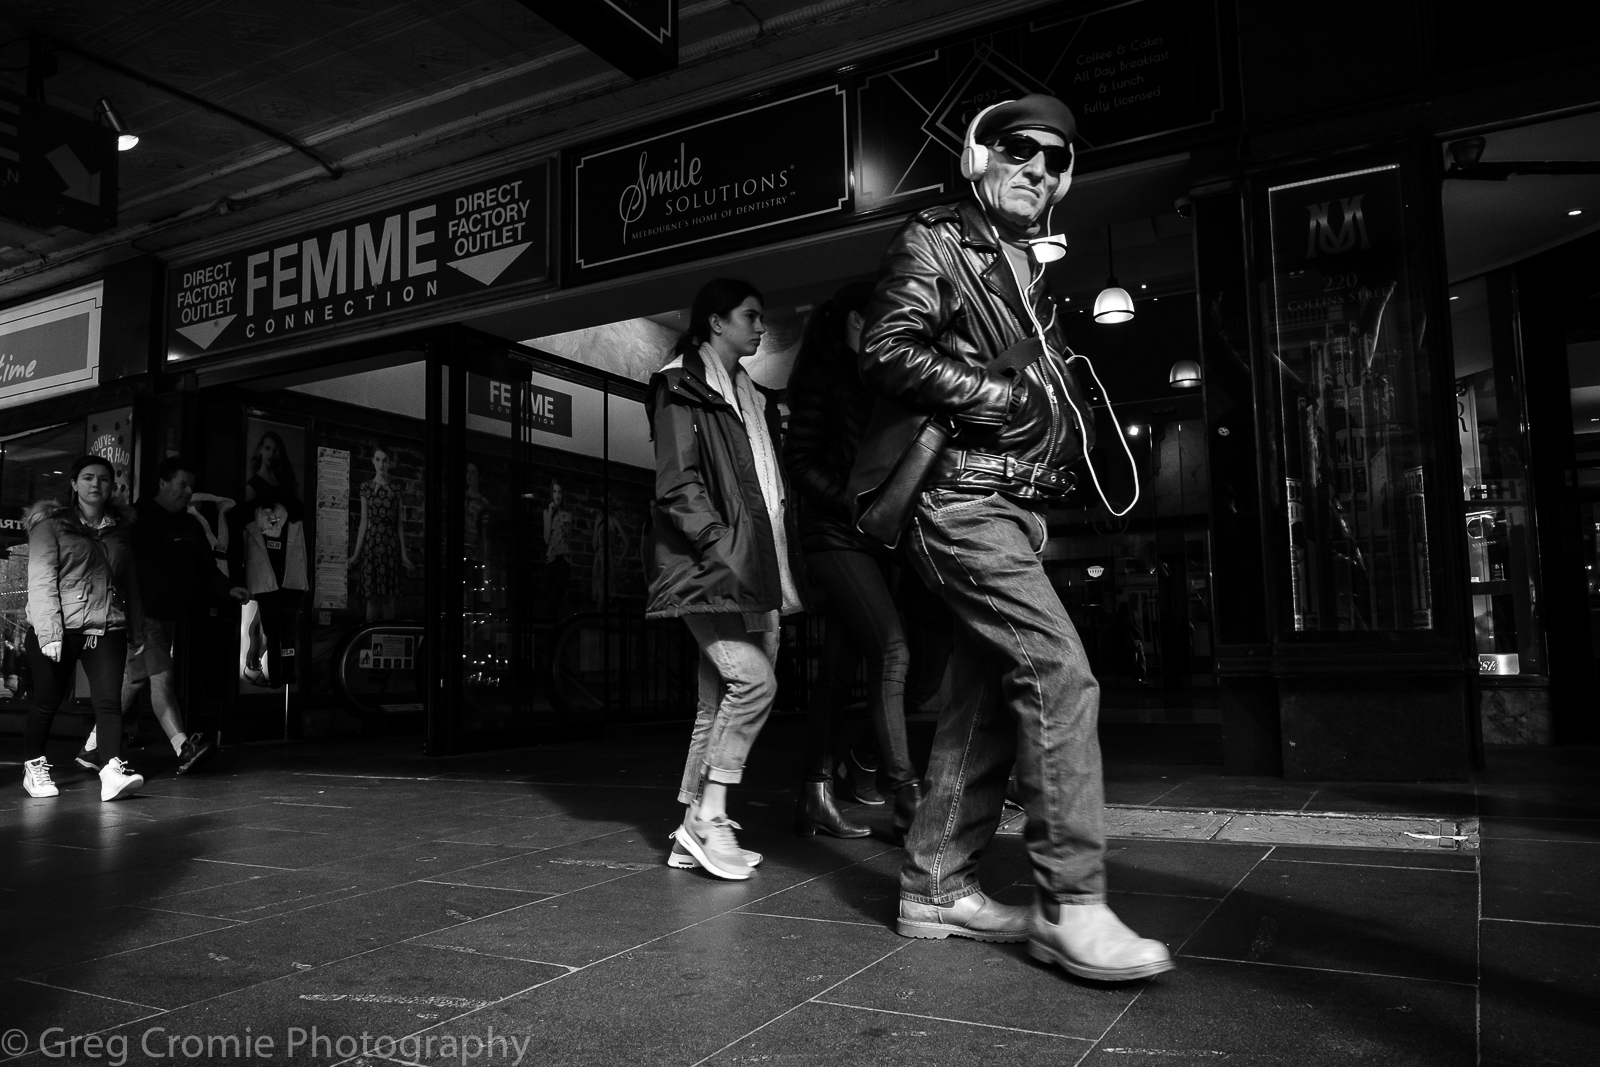 Street Photography with the Fujifilm XF14mmF2.8.